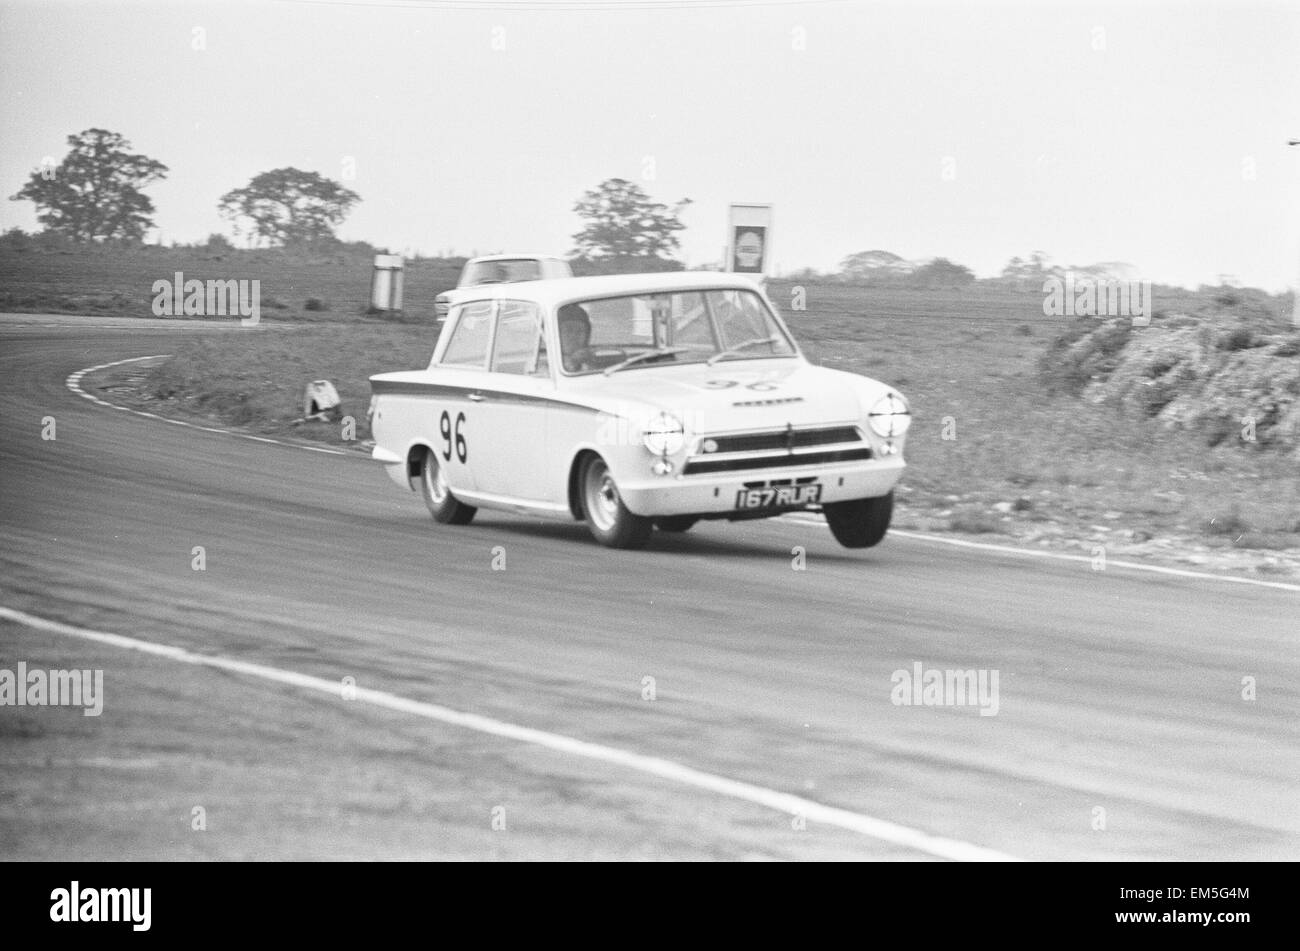 Jim Clark in the Team Lotus Cortina seen here lifting a wheel through the esses at Snetterton during the Saloon Stock Photo